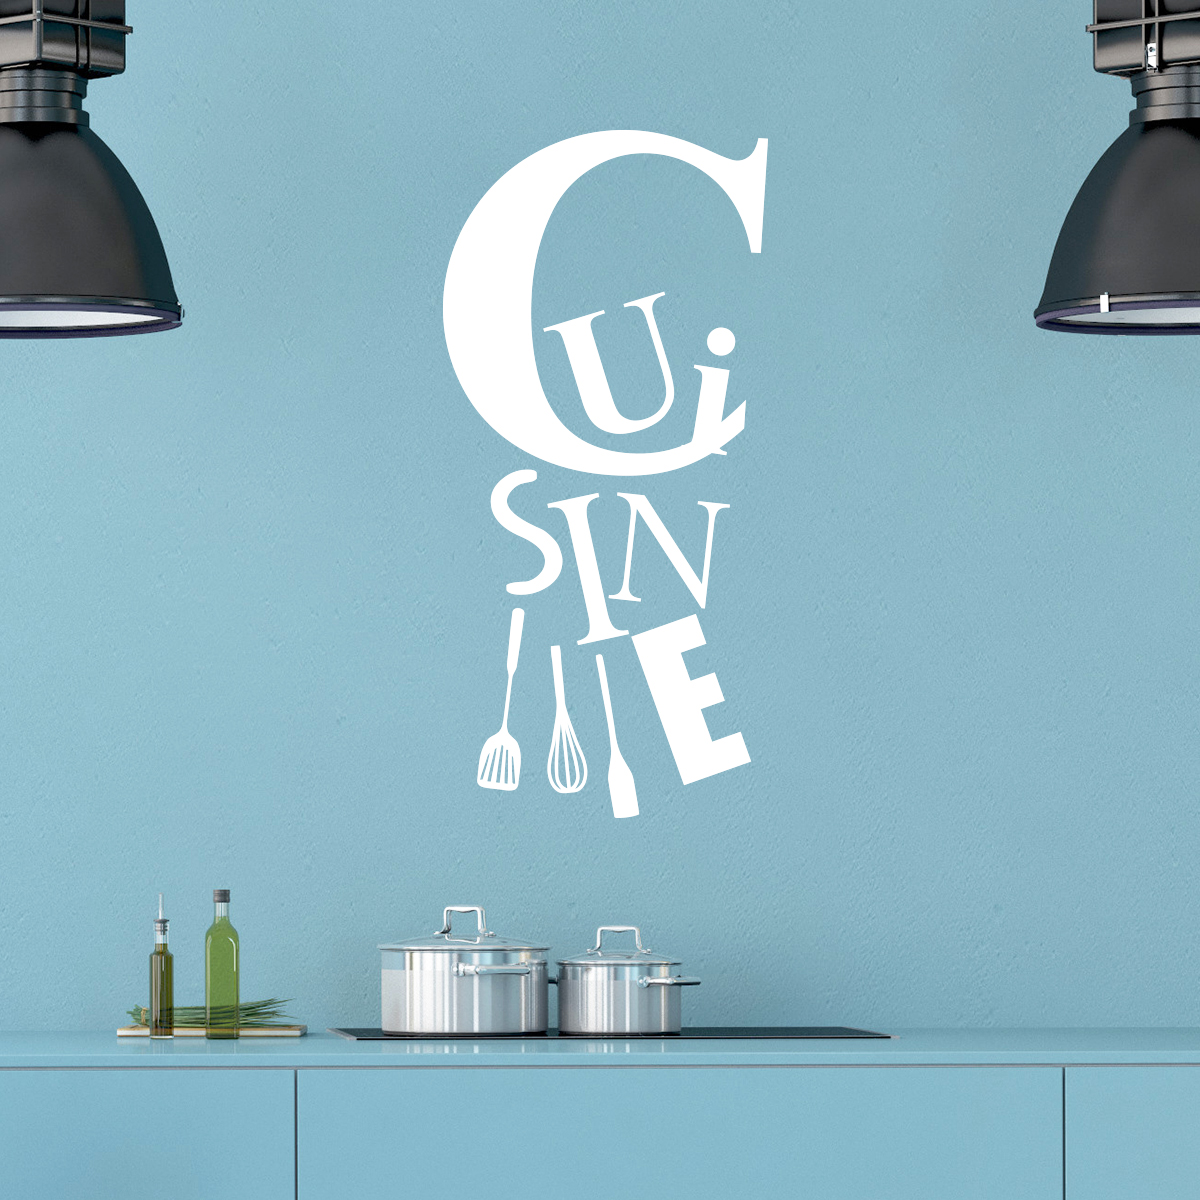 sticker cuisine et les ustensiles stickers cuisine ambiance sticker. Black Bedroom Furniture Sets. Home Design Ideas